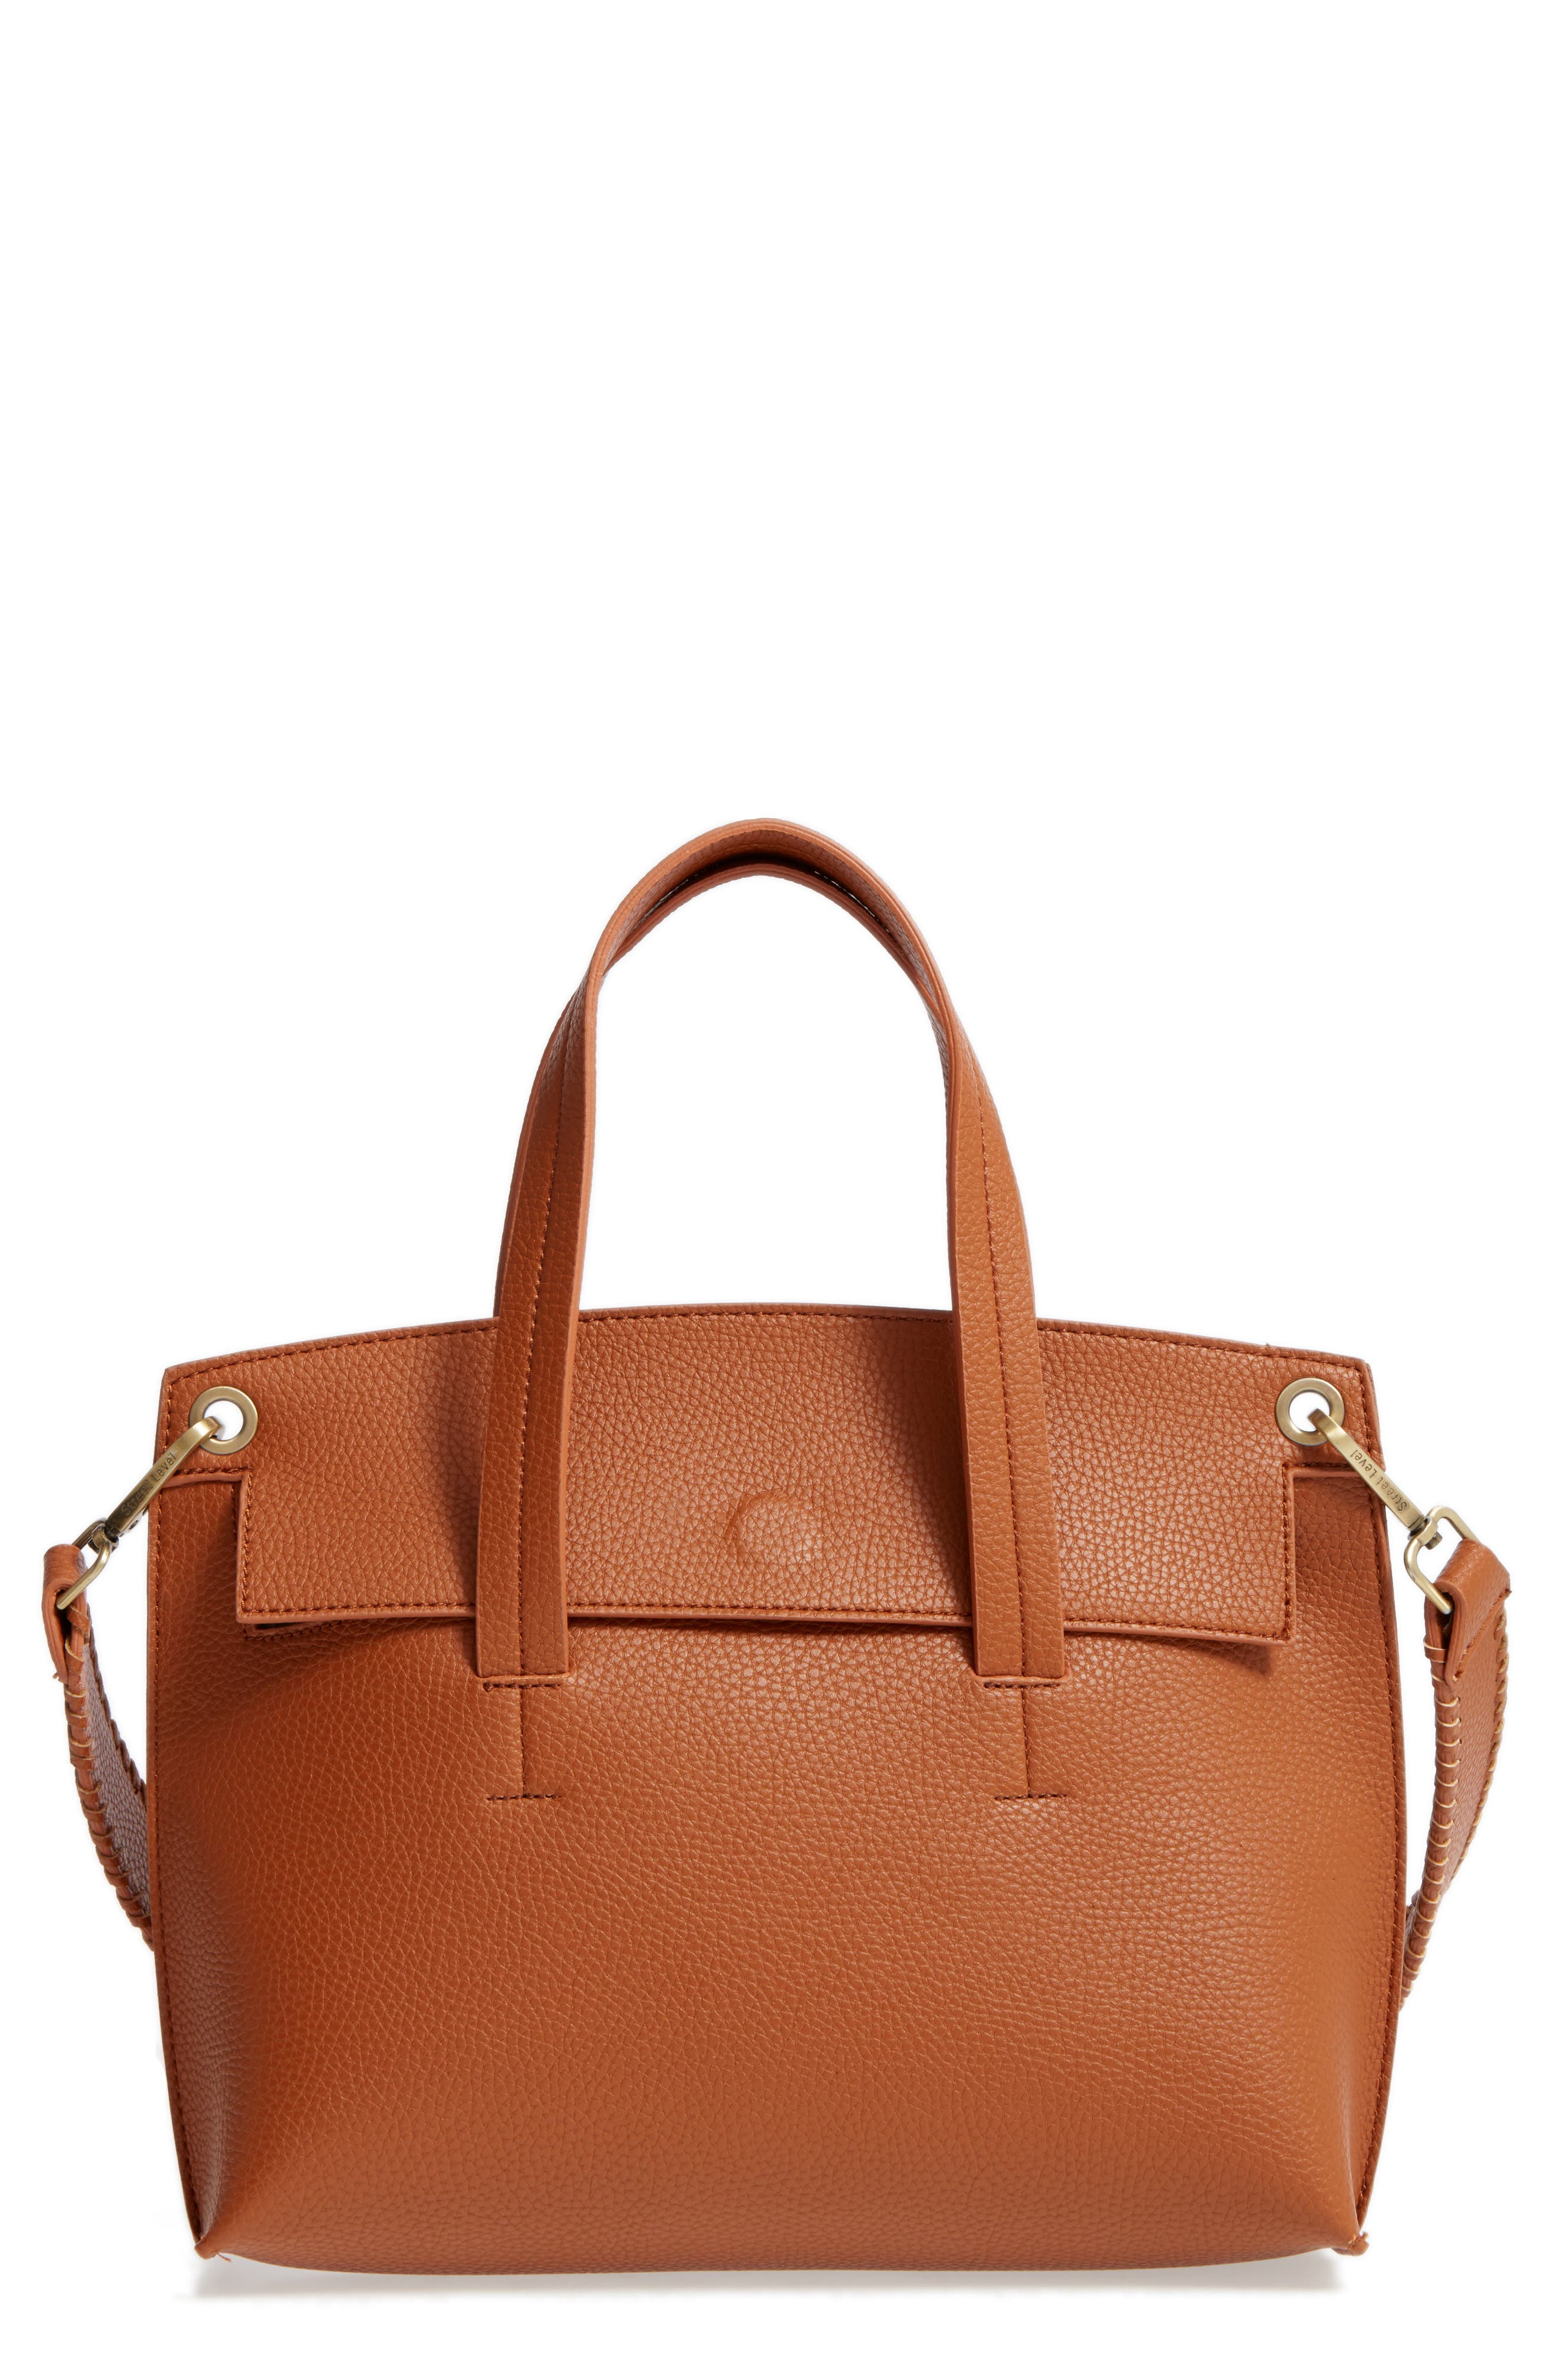 Alternate Image 1 Selected - Street Level Faux Leather Crossbody Bag